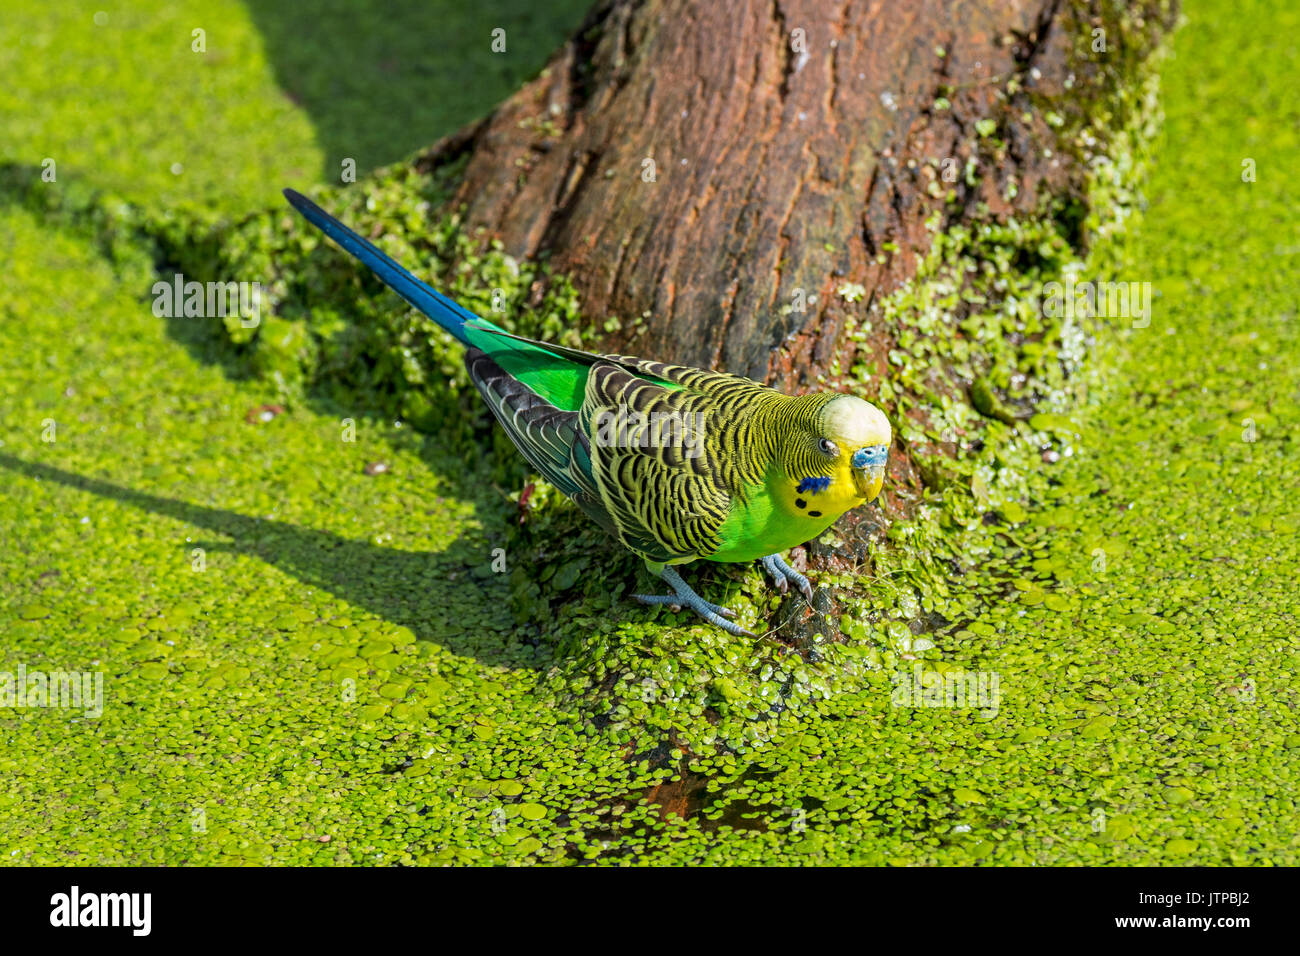 Colourful budgerigar / budgie / common parakeet (Melopsittacus undulatus) native to Australia drinking water of pond on a hot day - Stock Image